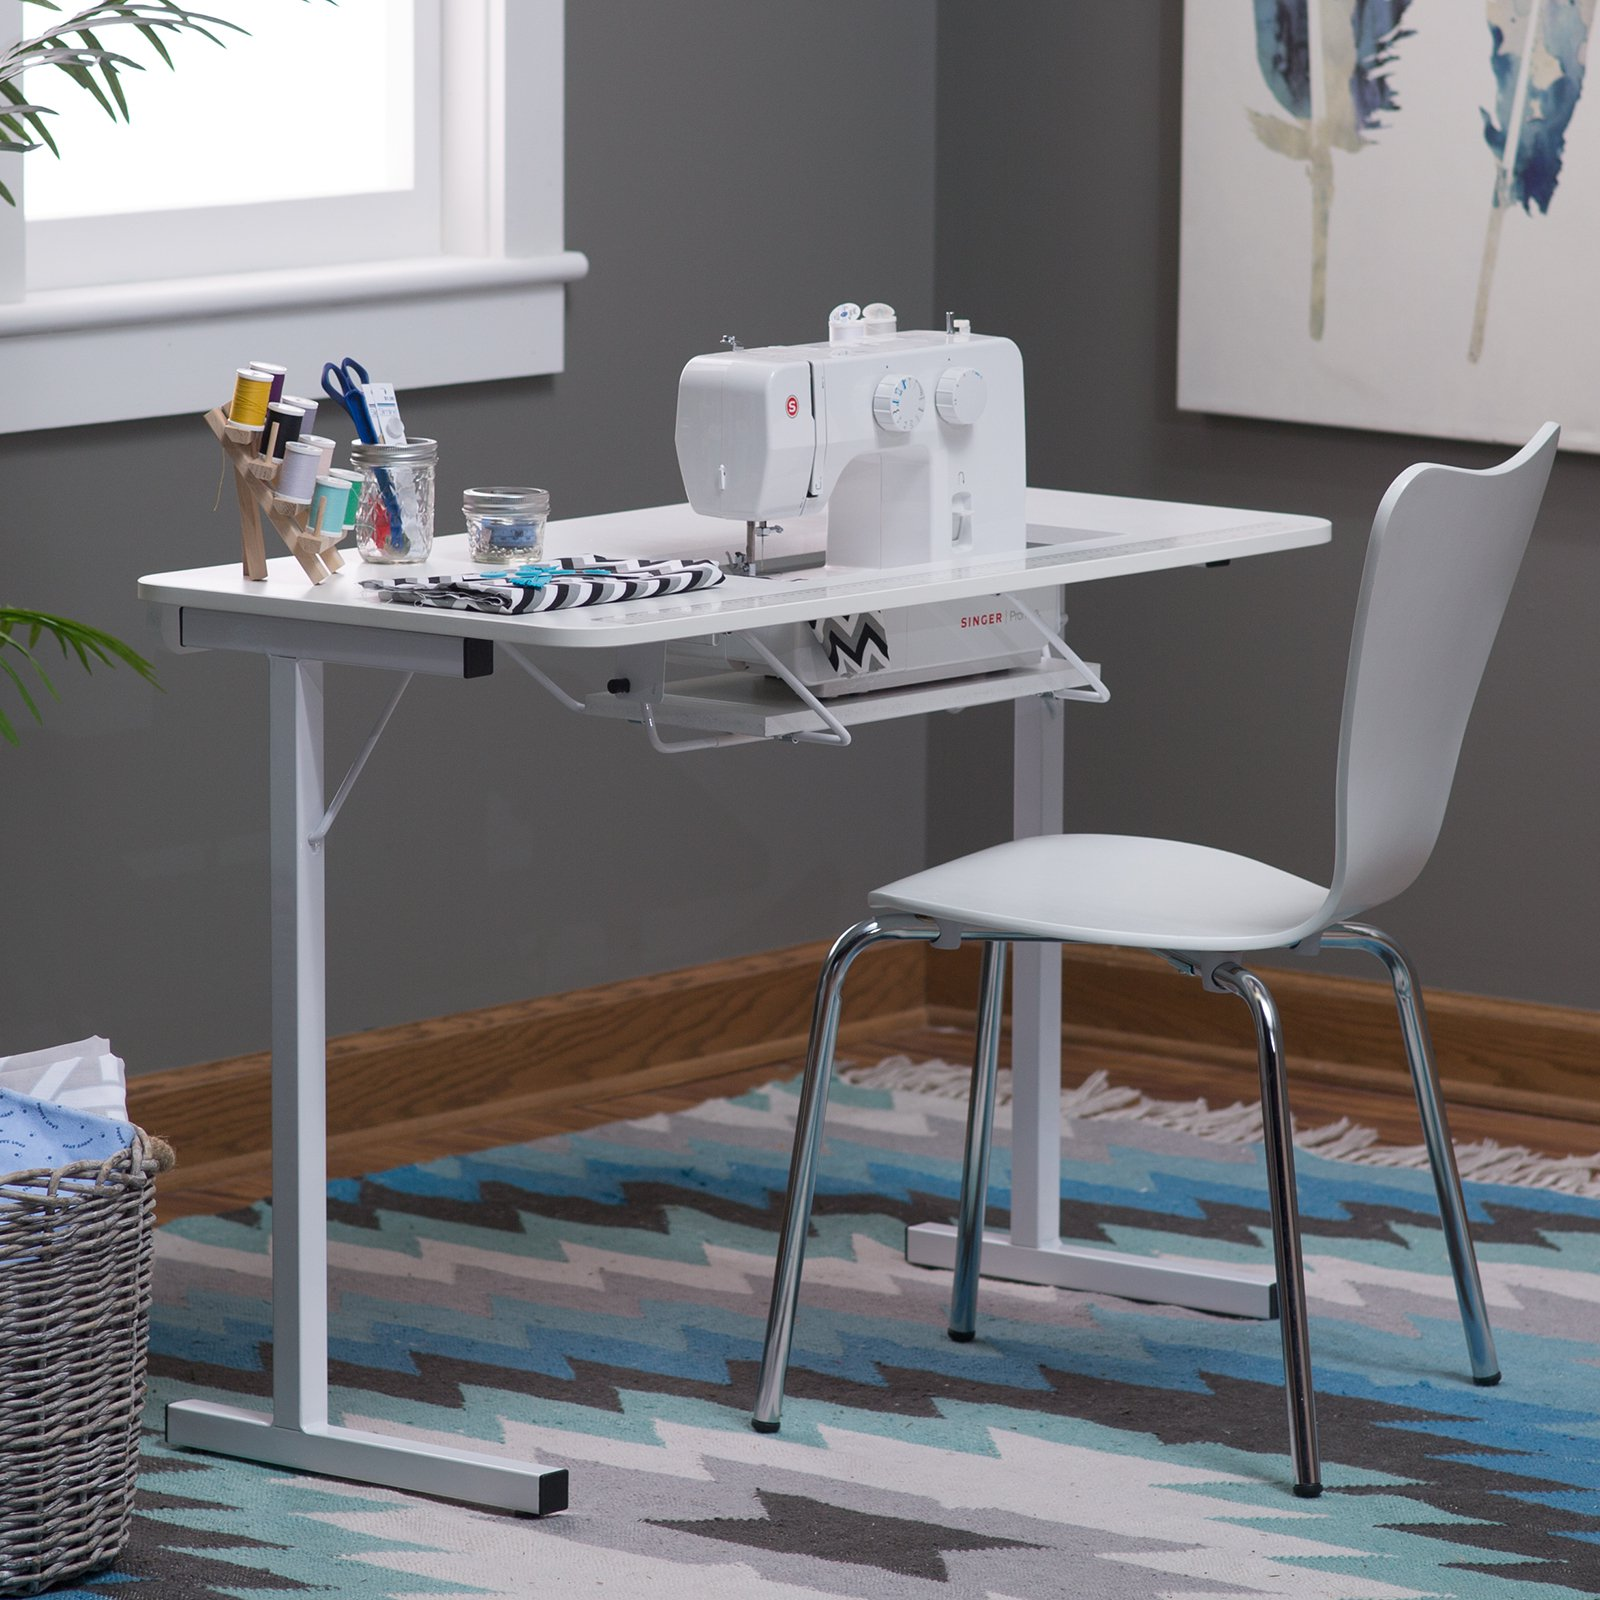 Portable sewing tables image collections table decoration ideas watchthetrailerfo arrow 601 gidget sewing table walmart watchthetrailerfo watchthetrailerfo